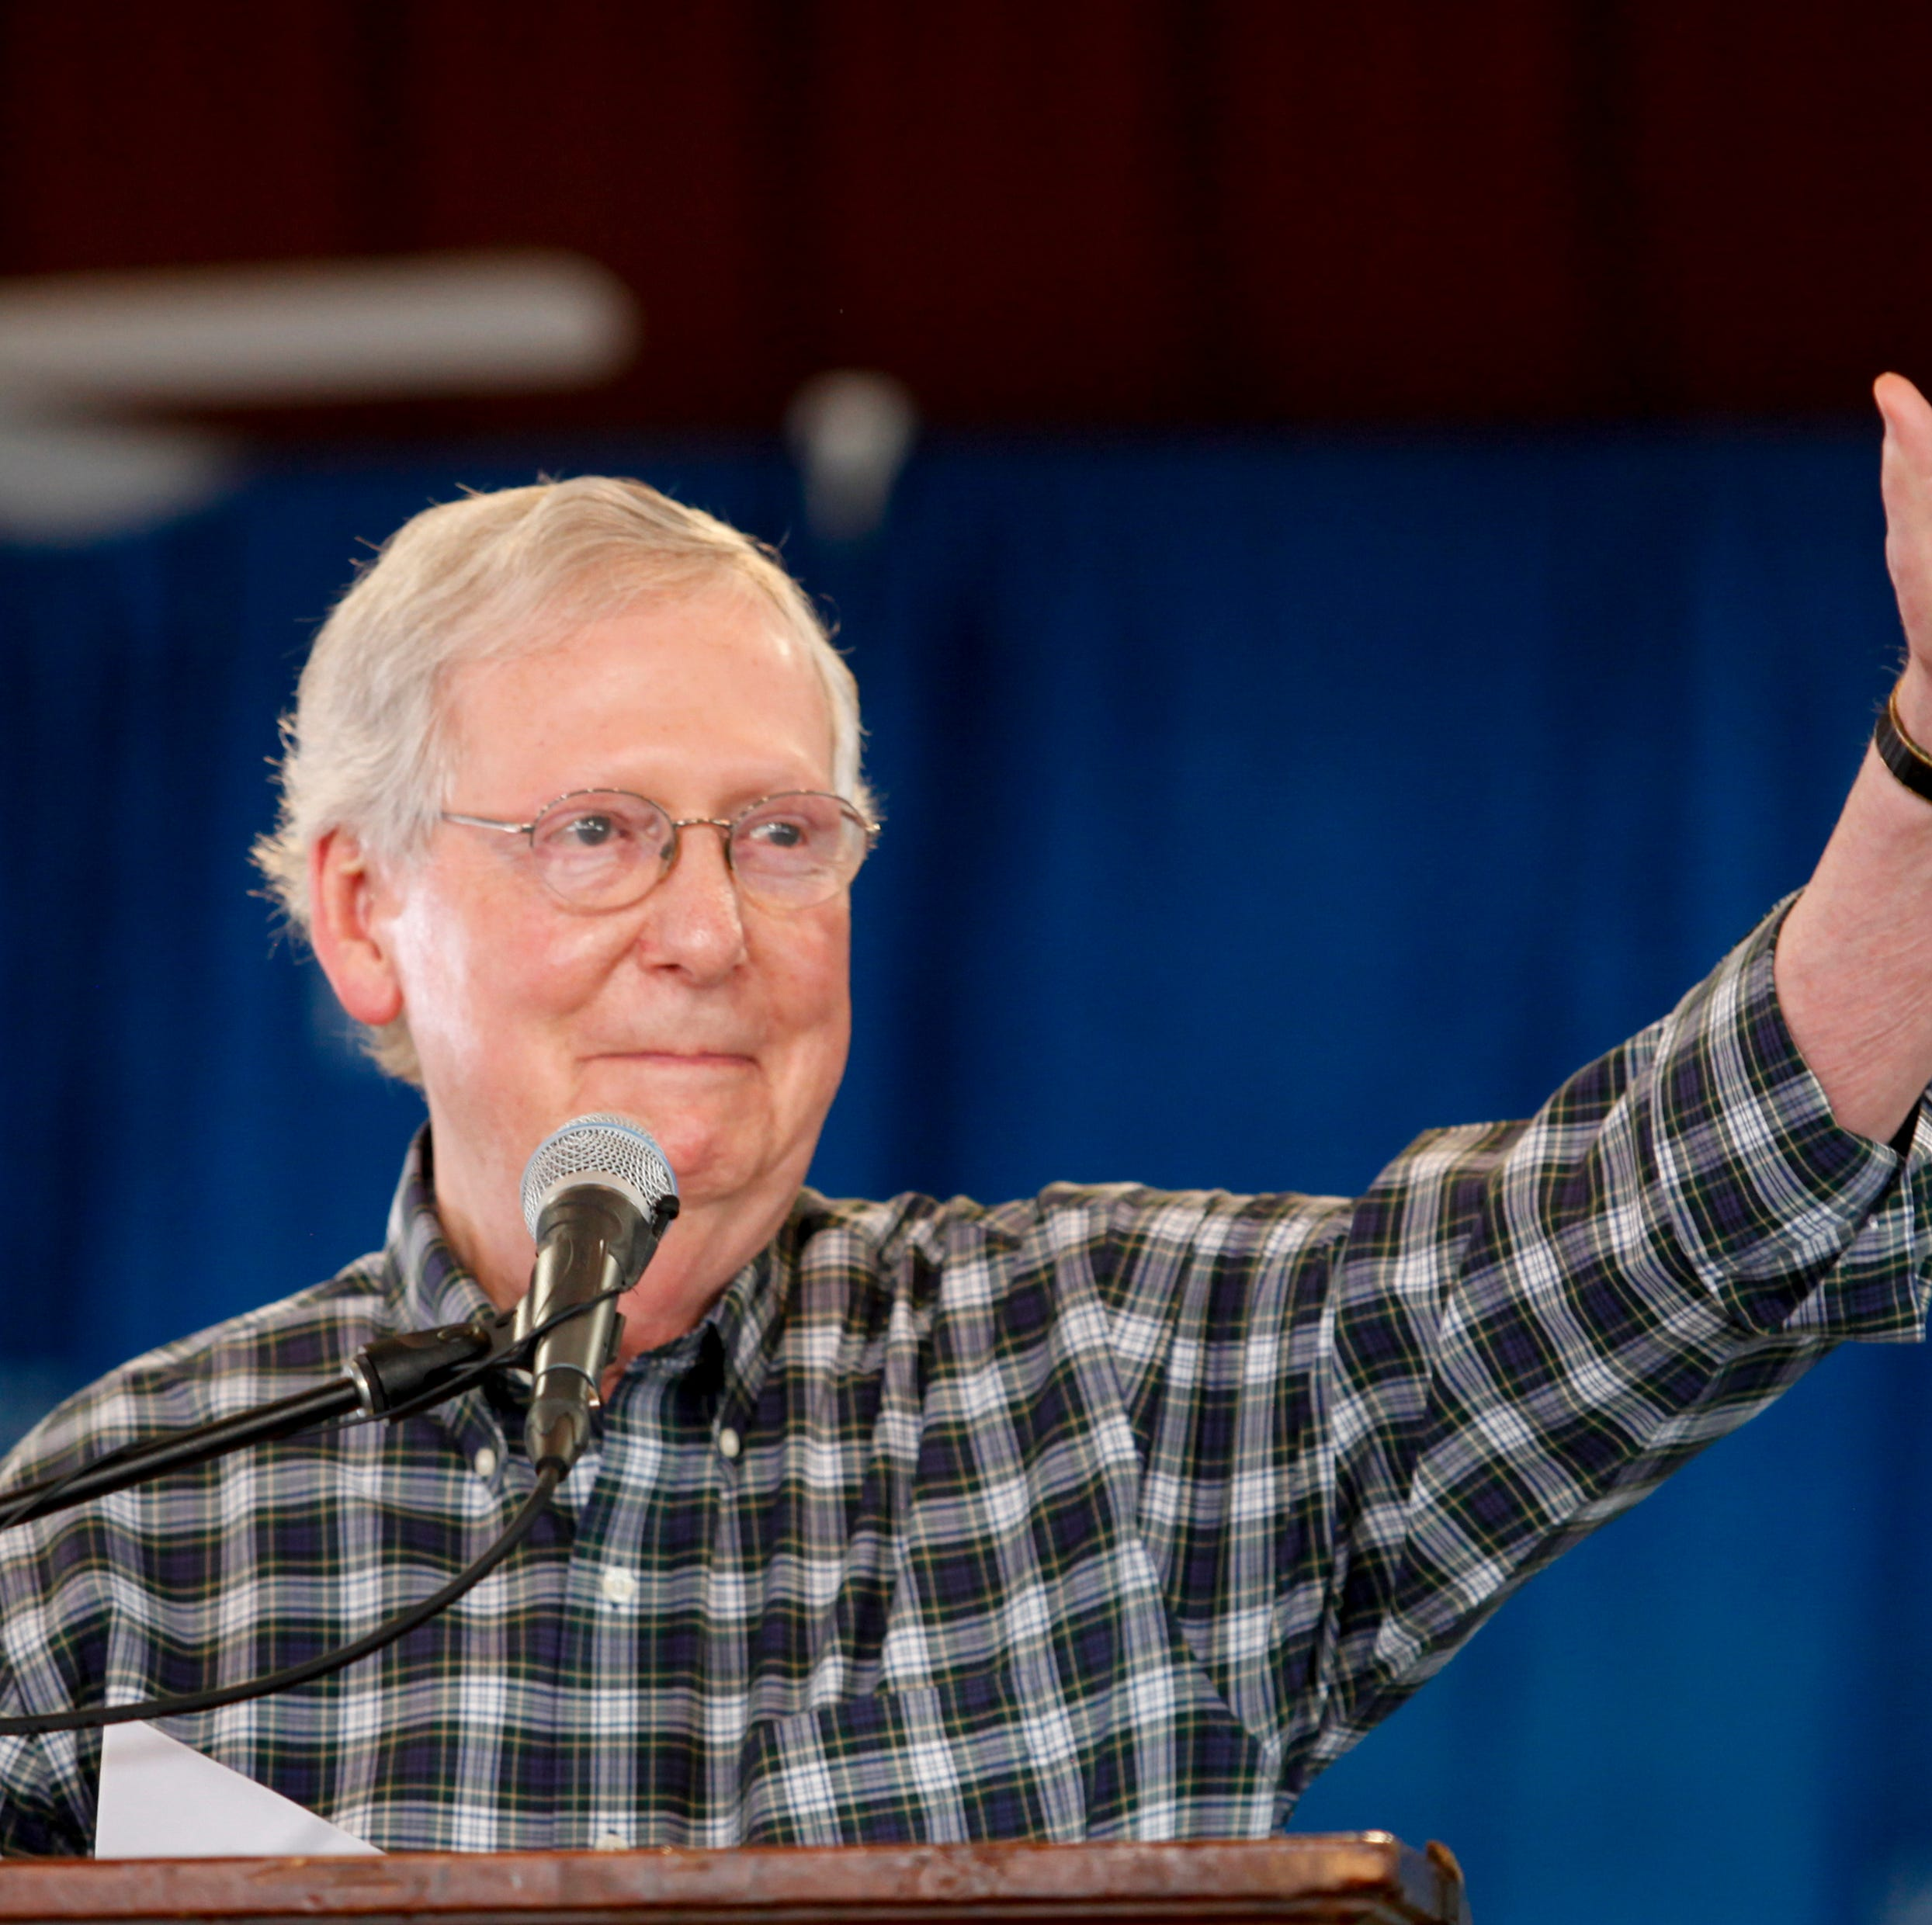 Senate Majority Leader Mitch McConnell talks at Fancy Farm.